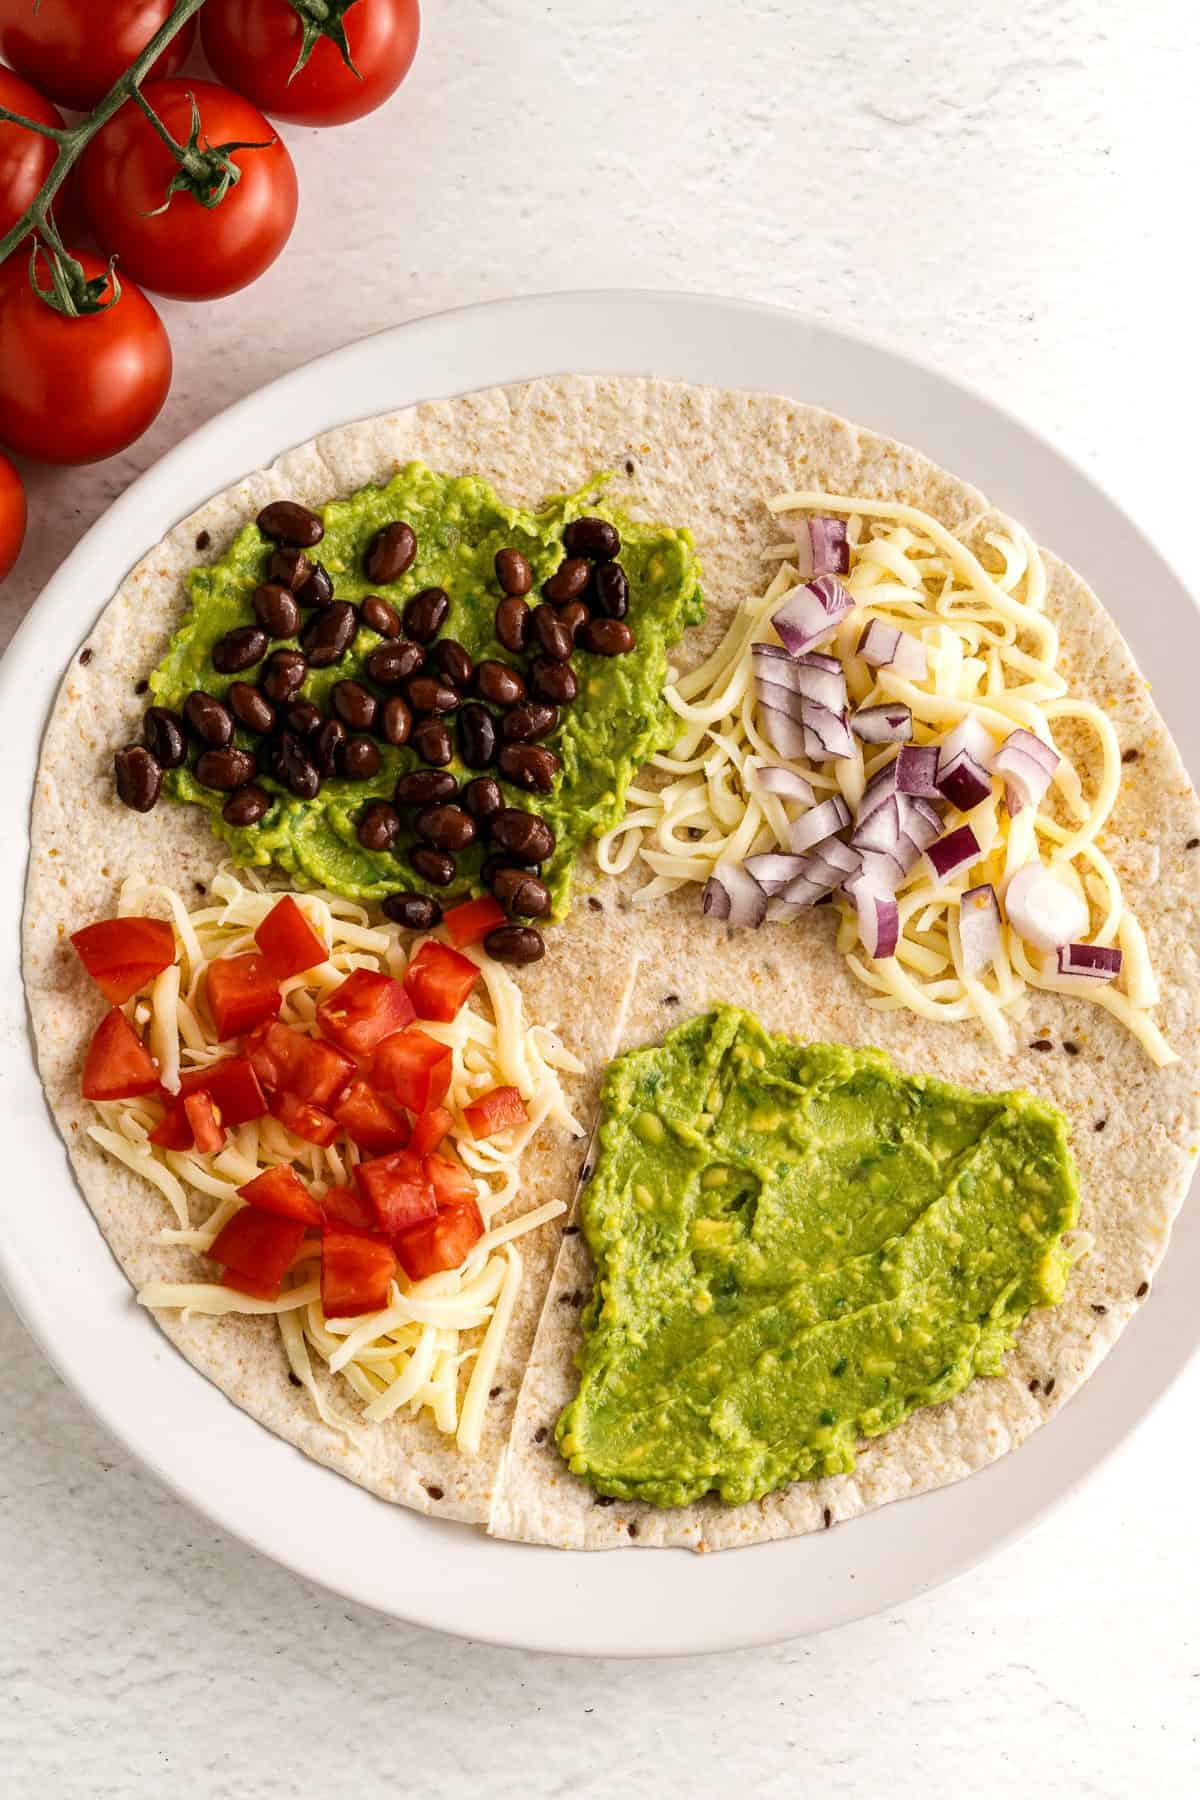 A tortilla filled with veggies and ready to be folded.